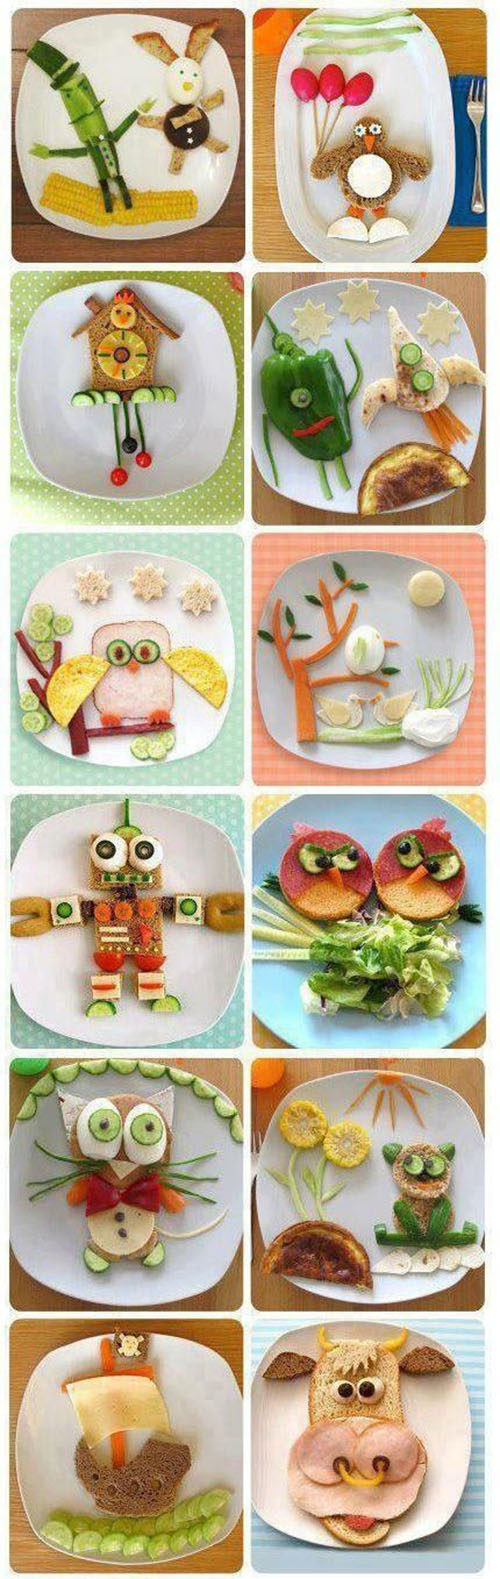 So Cute Breakfast11.